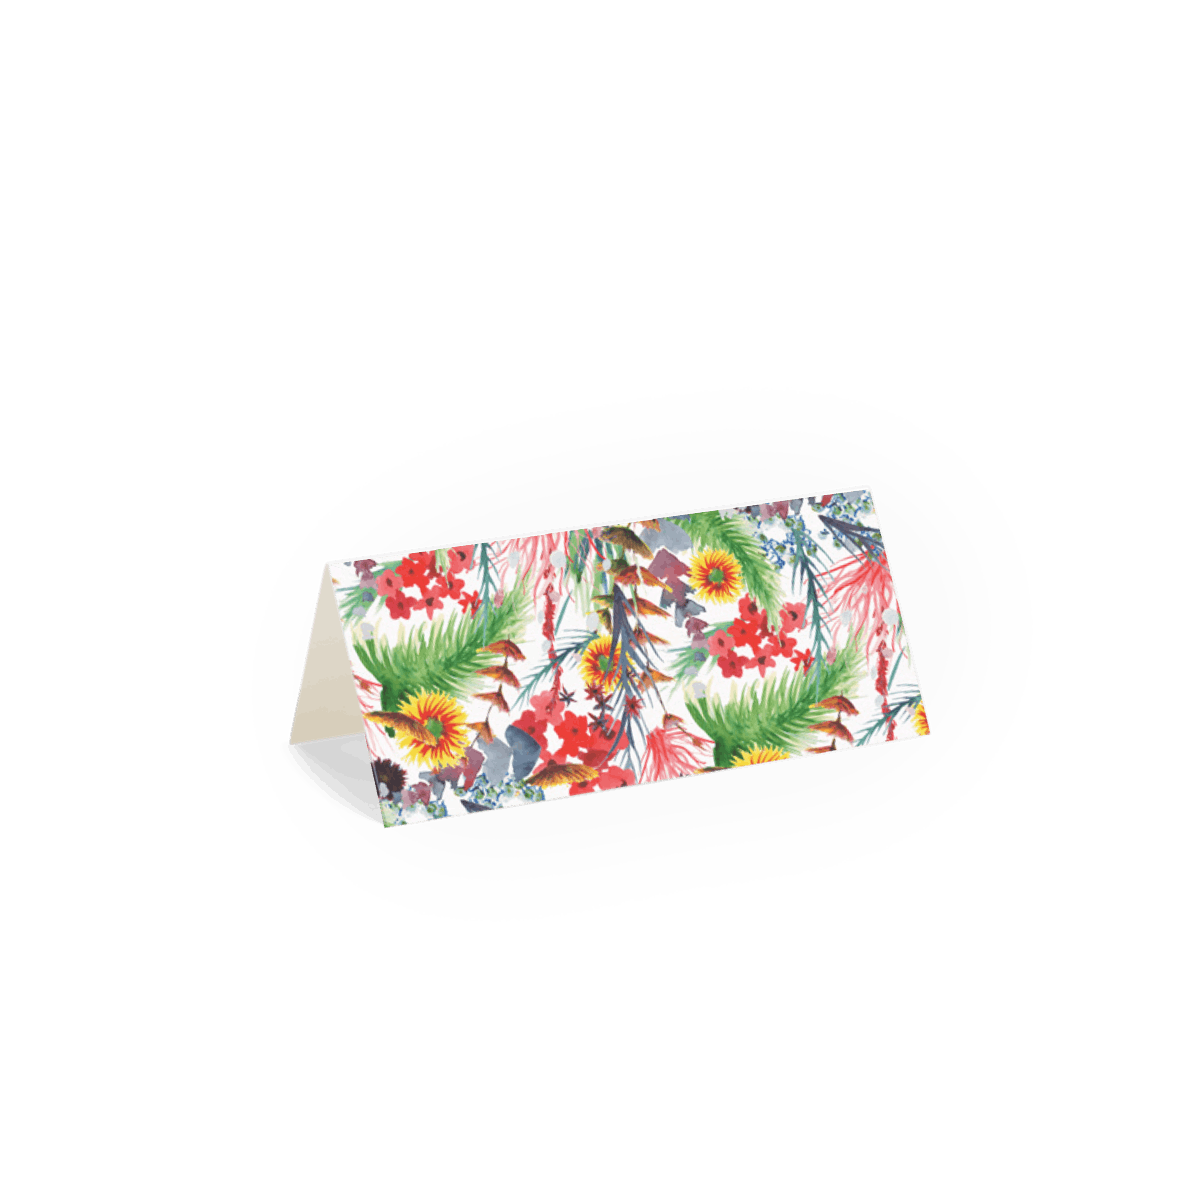 Https%3a%2f%2fwww.papier.com%2fproduct image%2f81772%2f15%2fwild floral 19687 back 1561993531.png?ixlib=rb 1.1